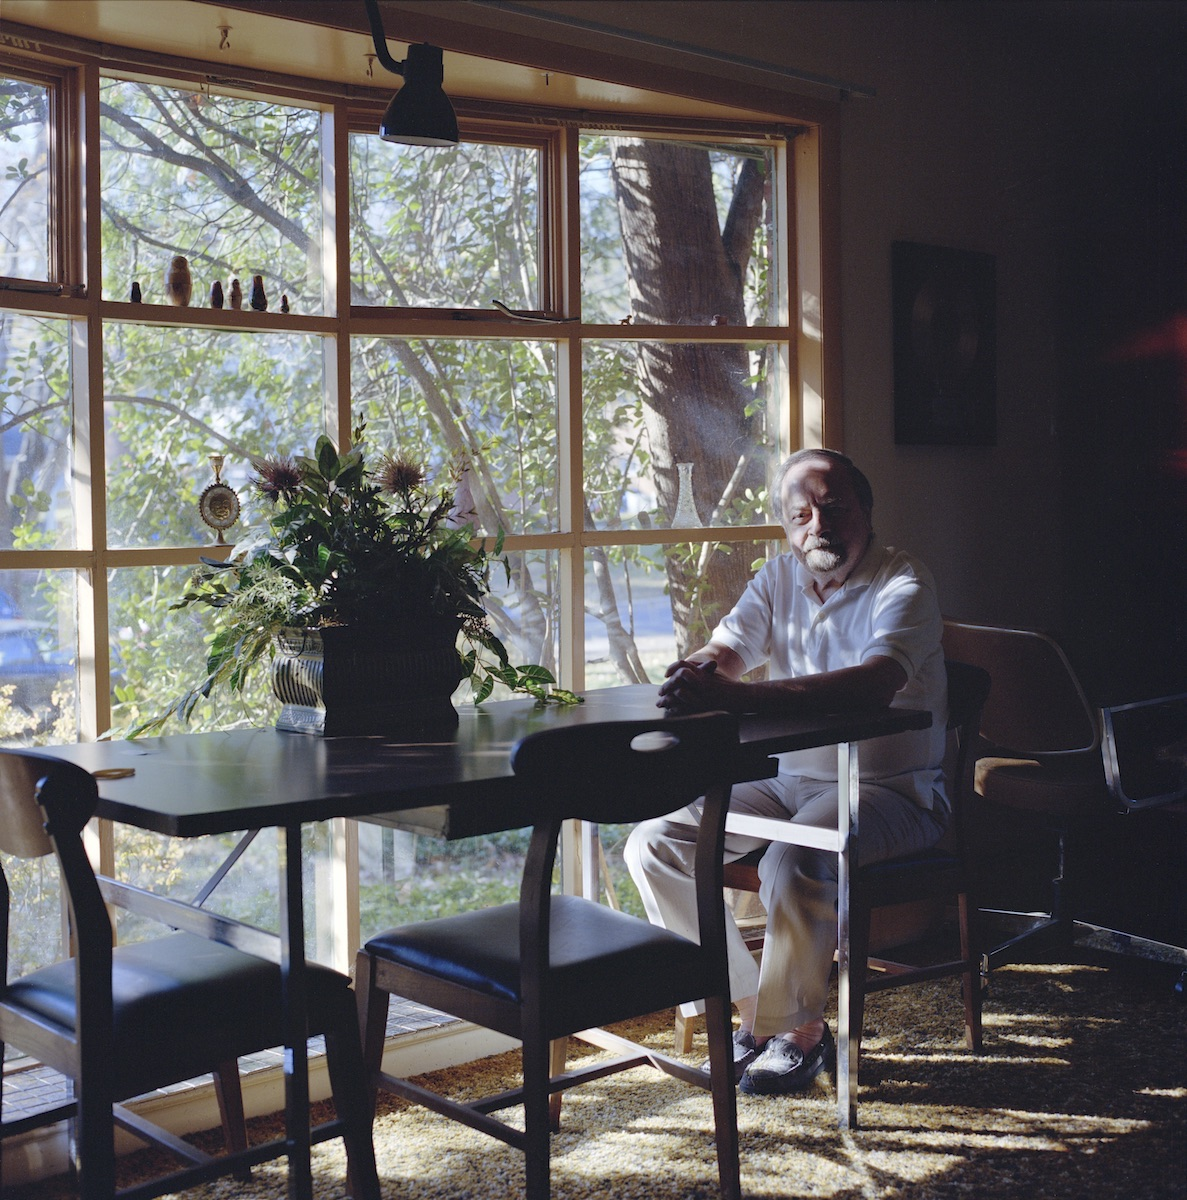 holocaust survivor sits in his home looking at camera